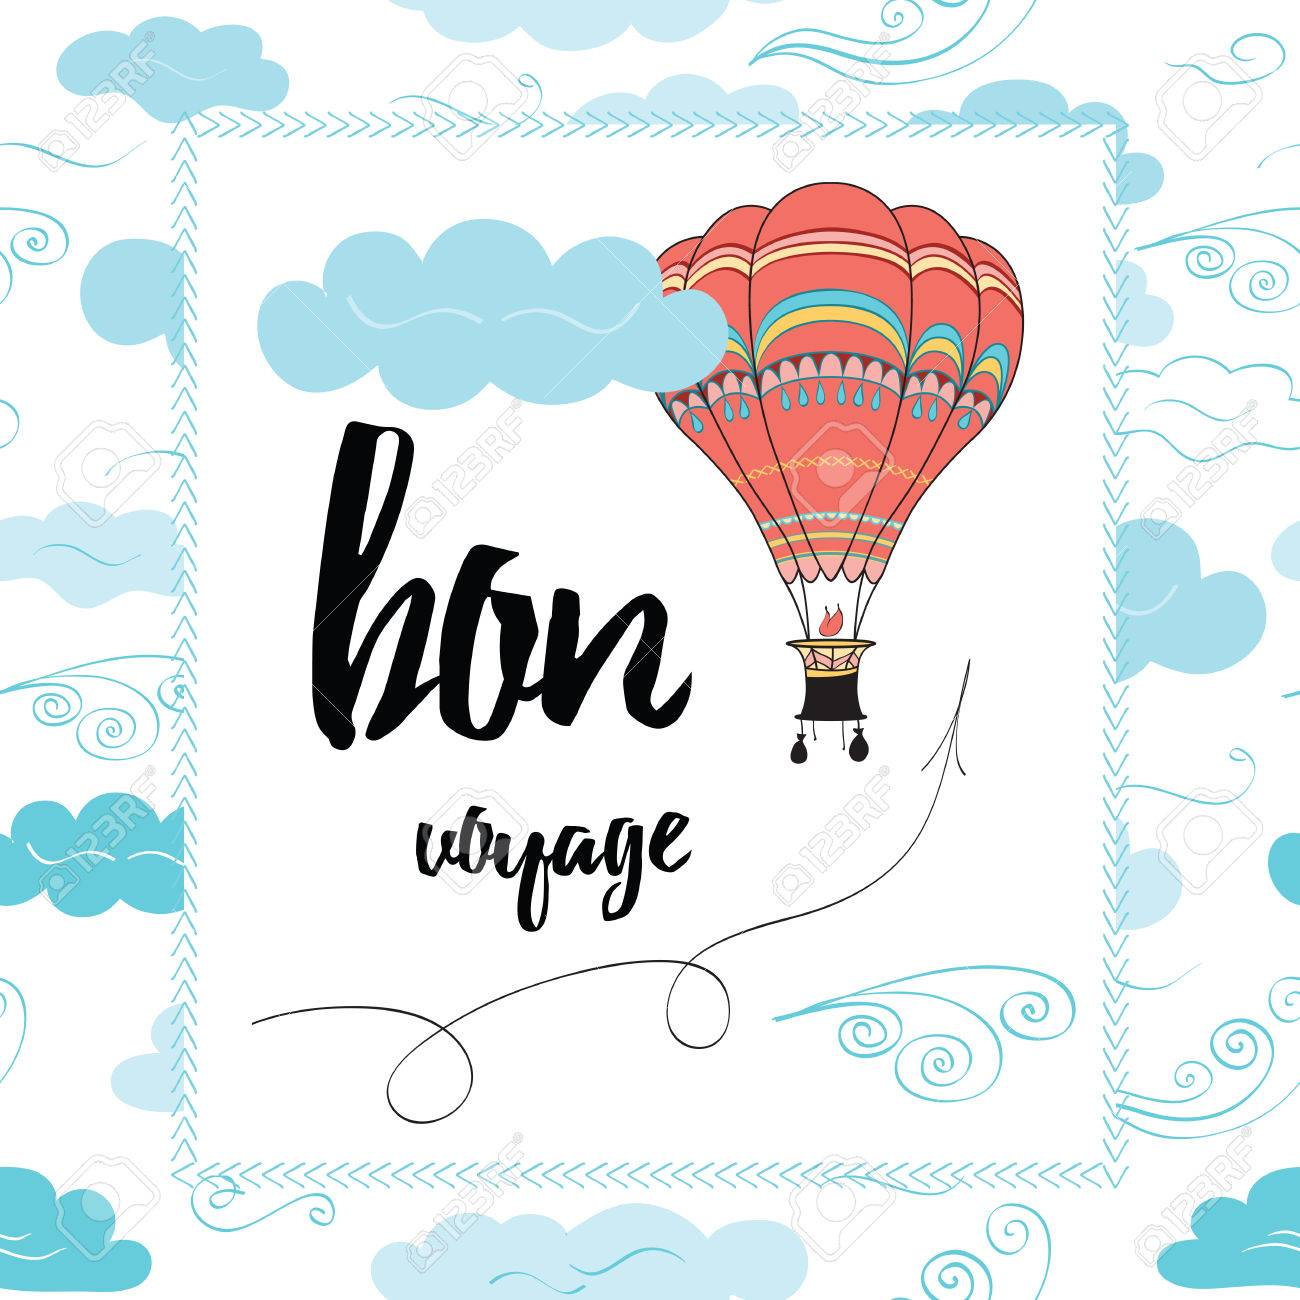 Travel Typography Banner With Hot Air Ballon And Inspirational Royalty Free Cliparts Vectors And Stock Illustration Image 66864863